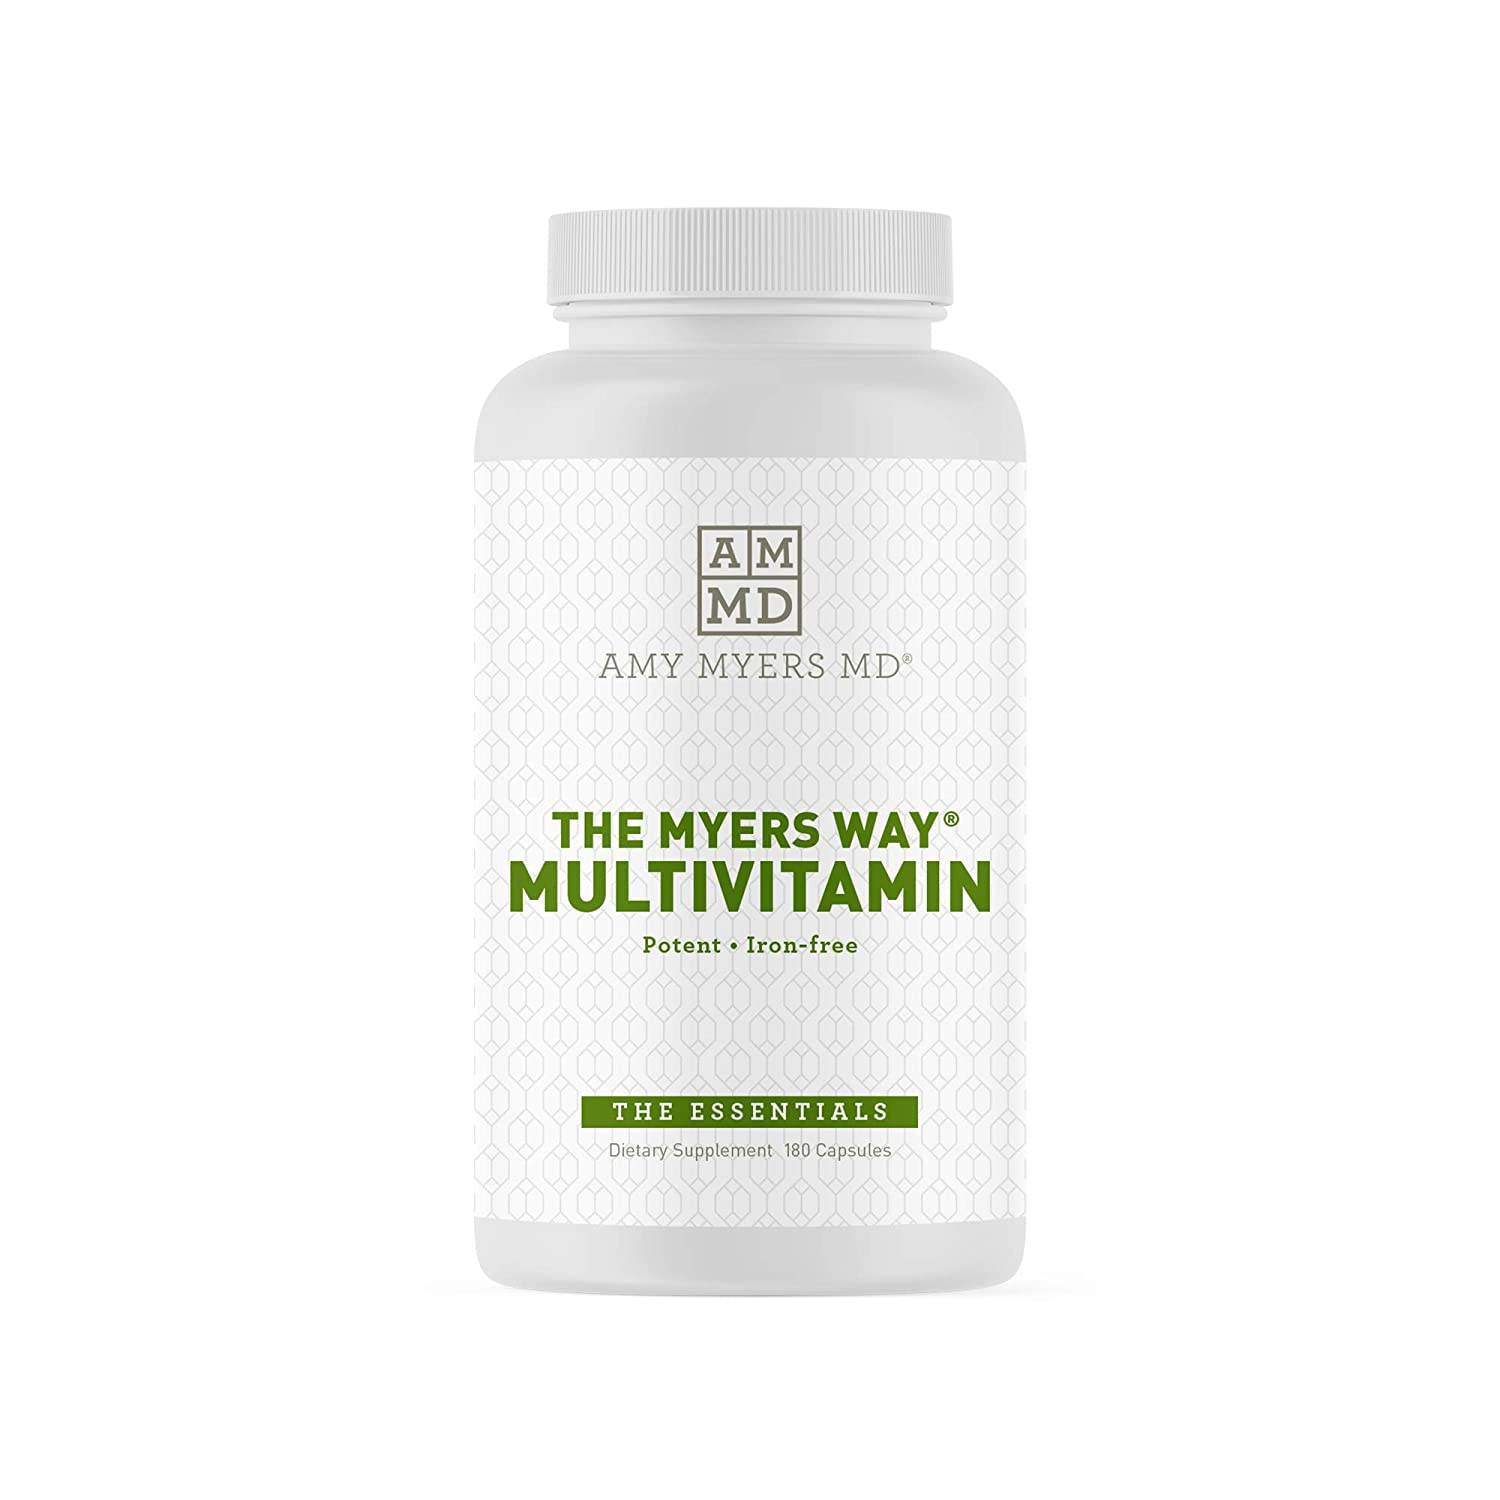 The Myers Way Multivitamin for Women and Men for Thyroid Support, Stress Relief, Immune Support – Activated B Vitamins, Zinc, Selenium, Iooine – Rich in Nutrients and Minerals, Gluten Free 180 Caps